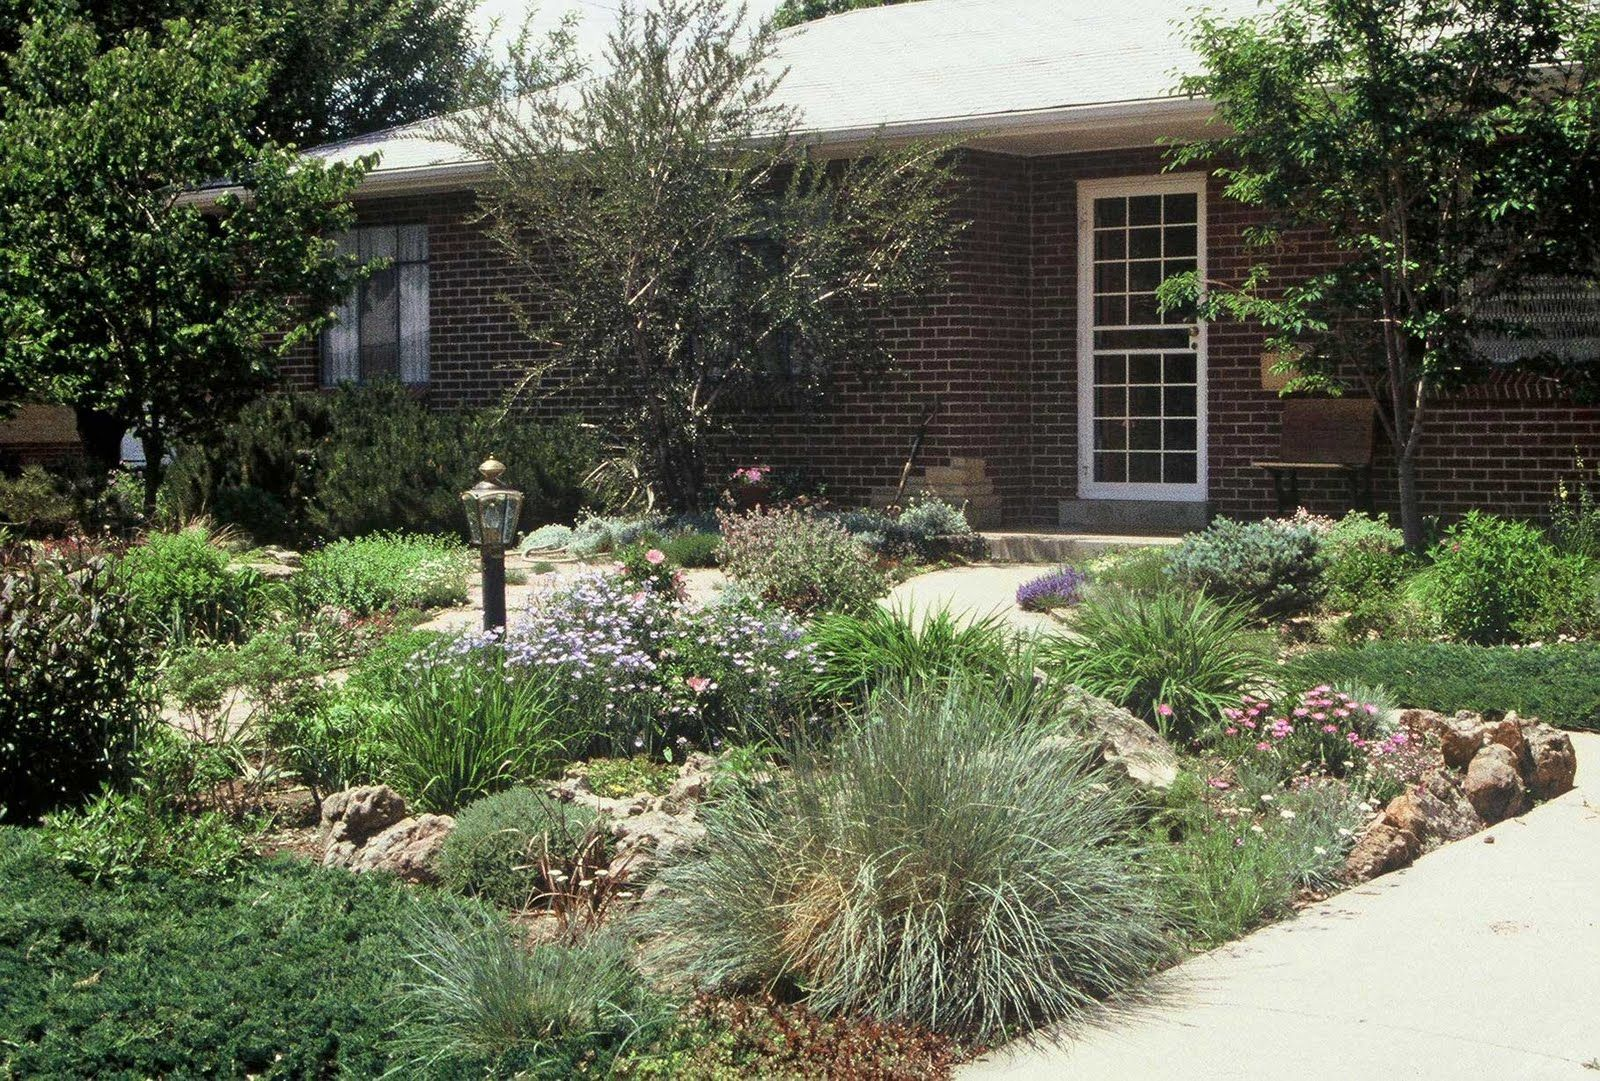 Simple landscaping ideas for front yards backyard ideas for No maintenance front yard